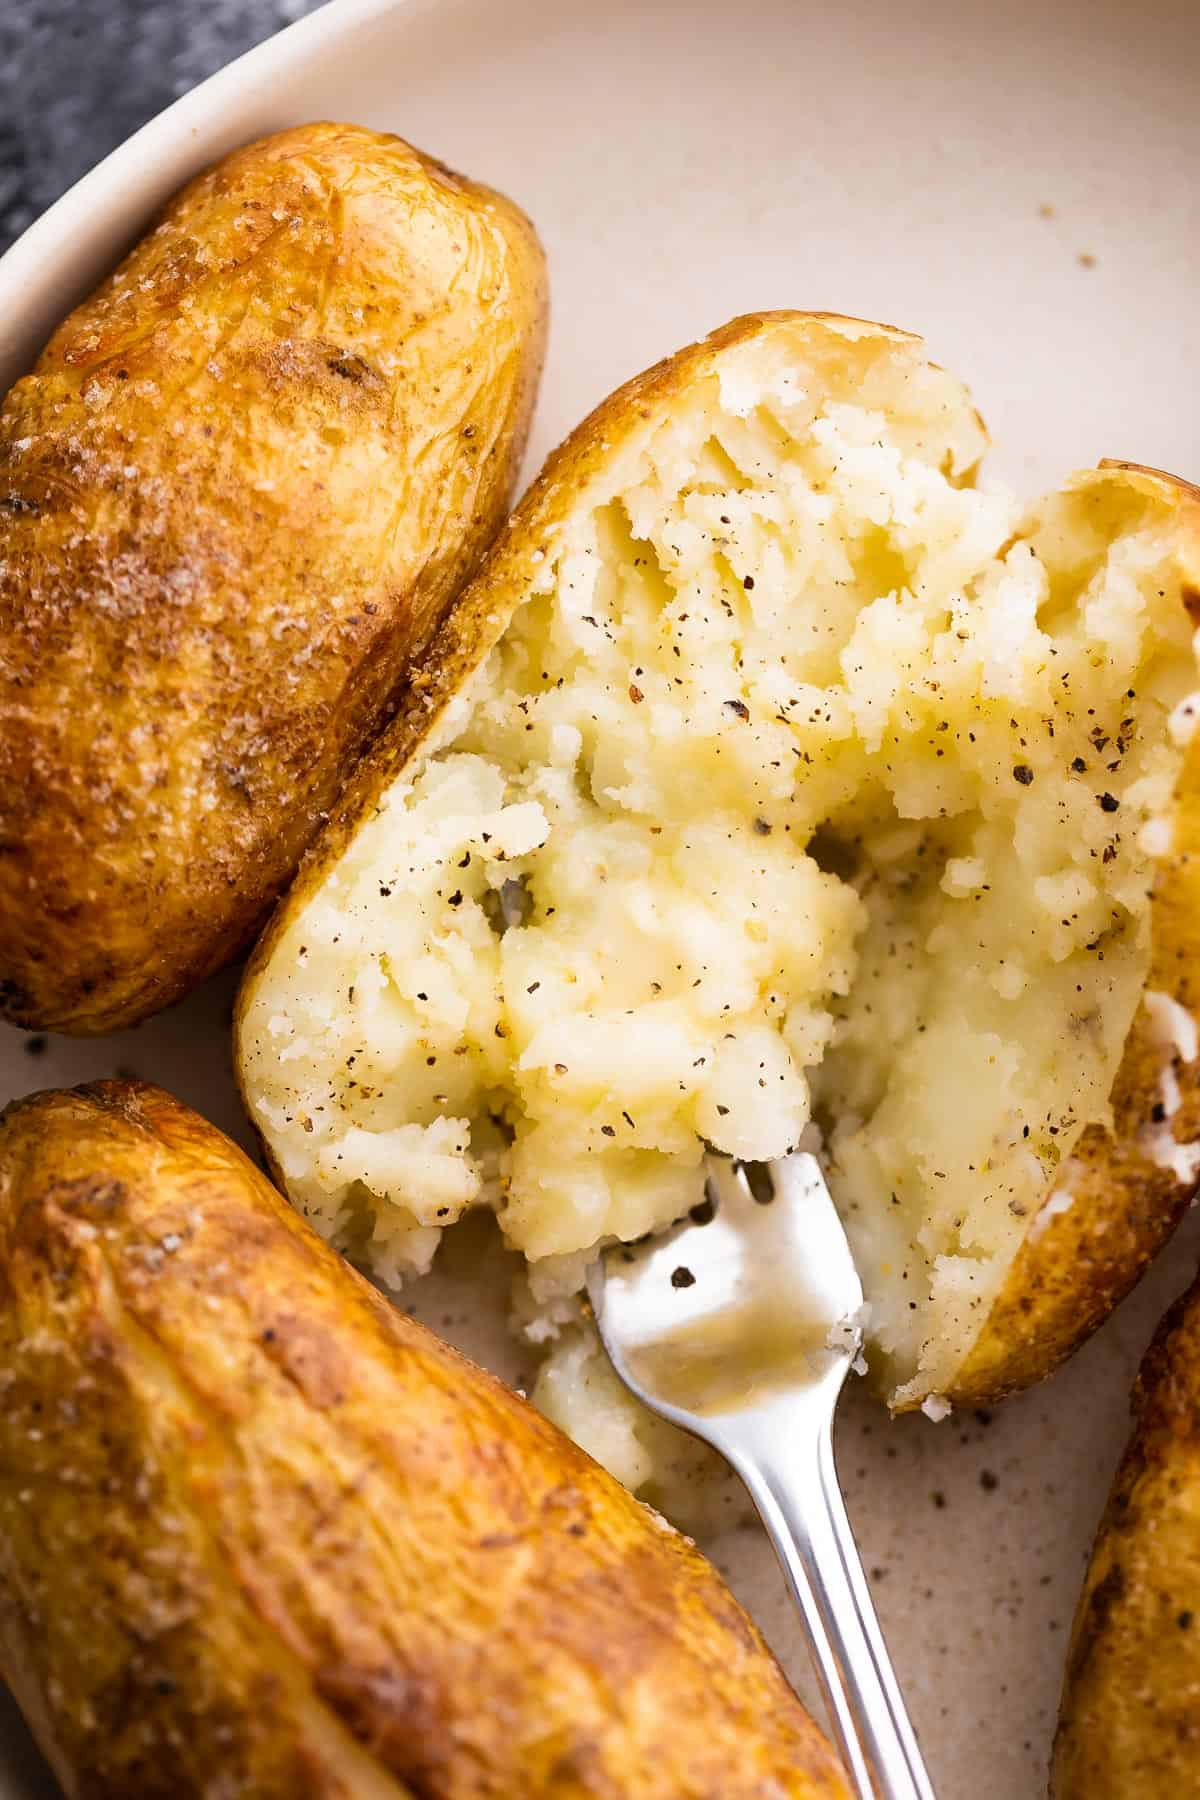 Close up the look of the soft, fluffy insides of a baked potato